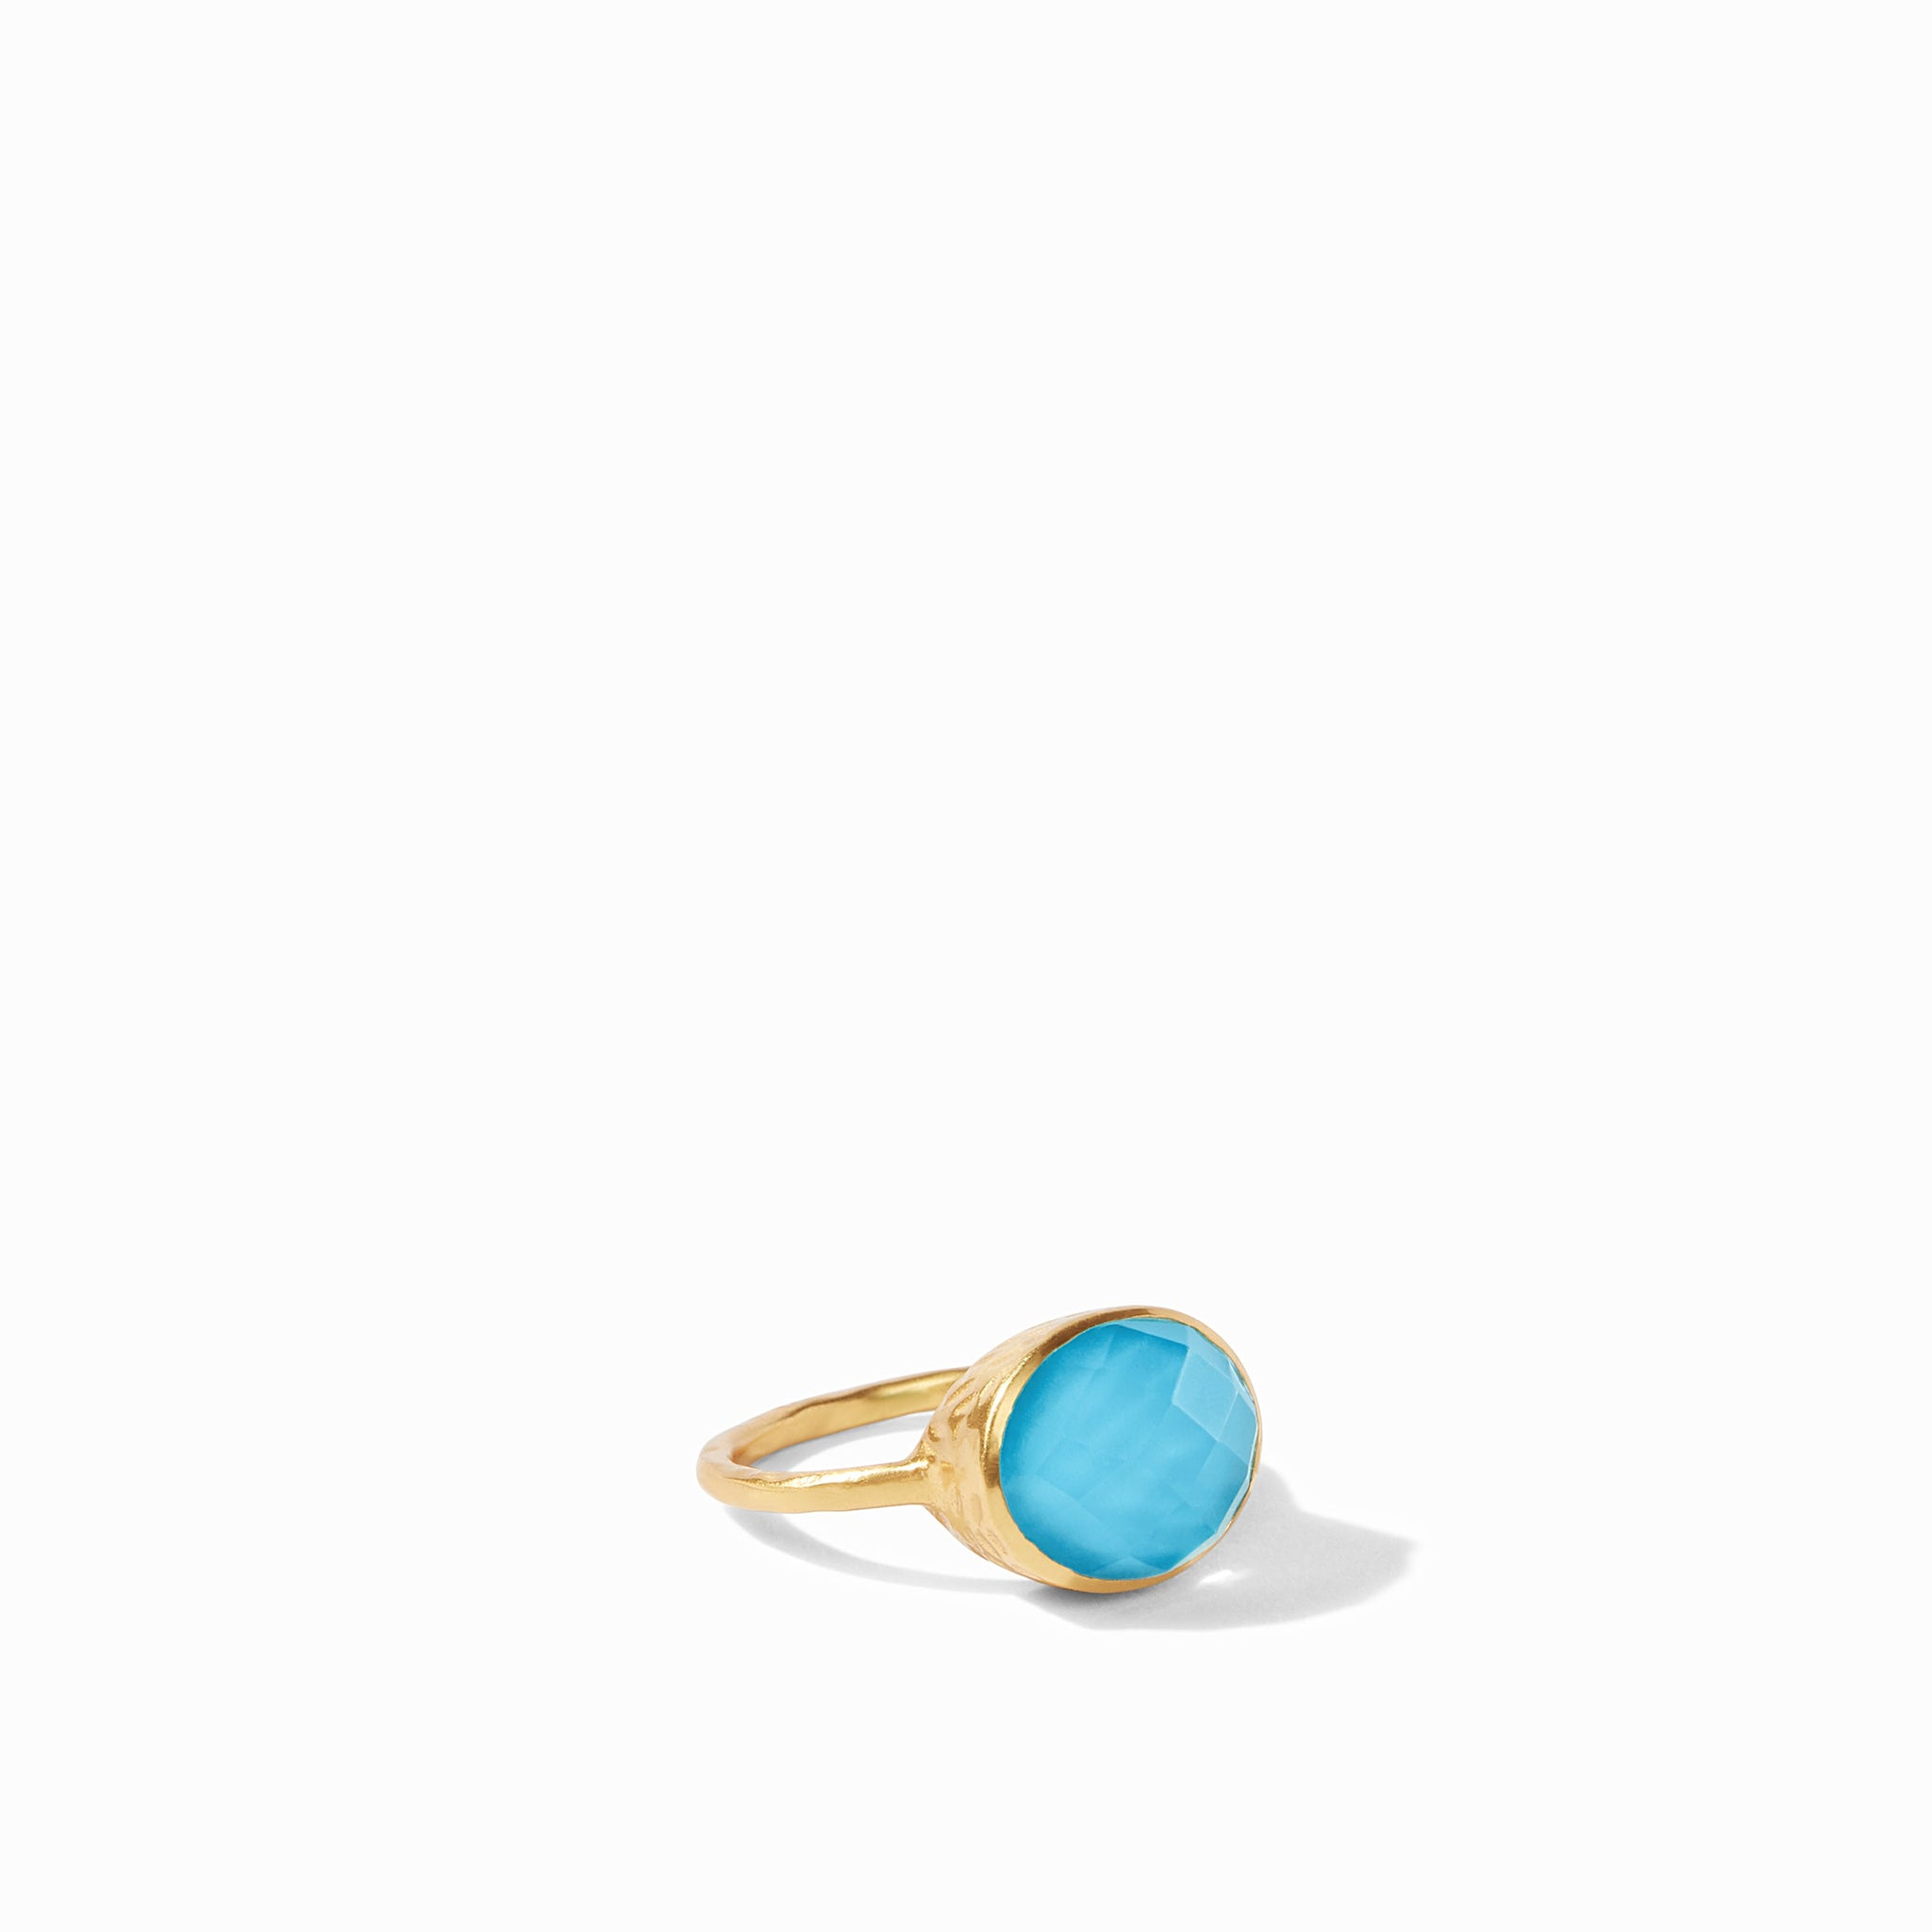 Iridescent Pacific Blue, resort, summer ring, classics, into the blue